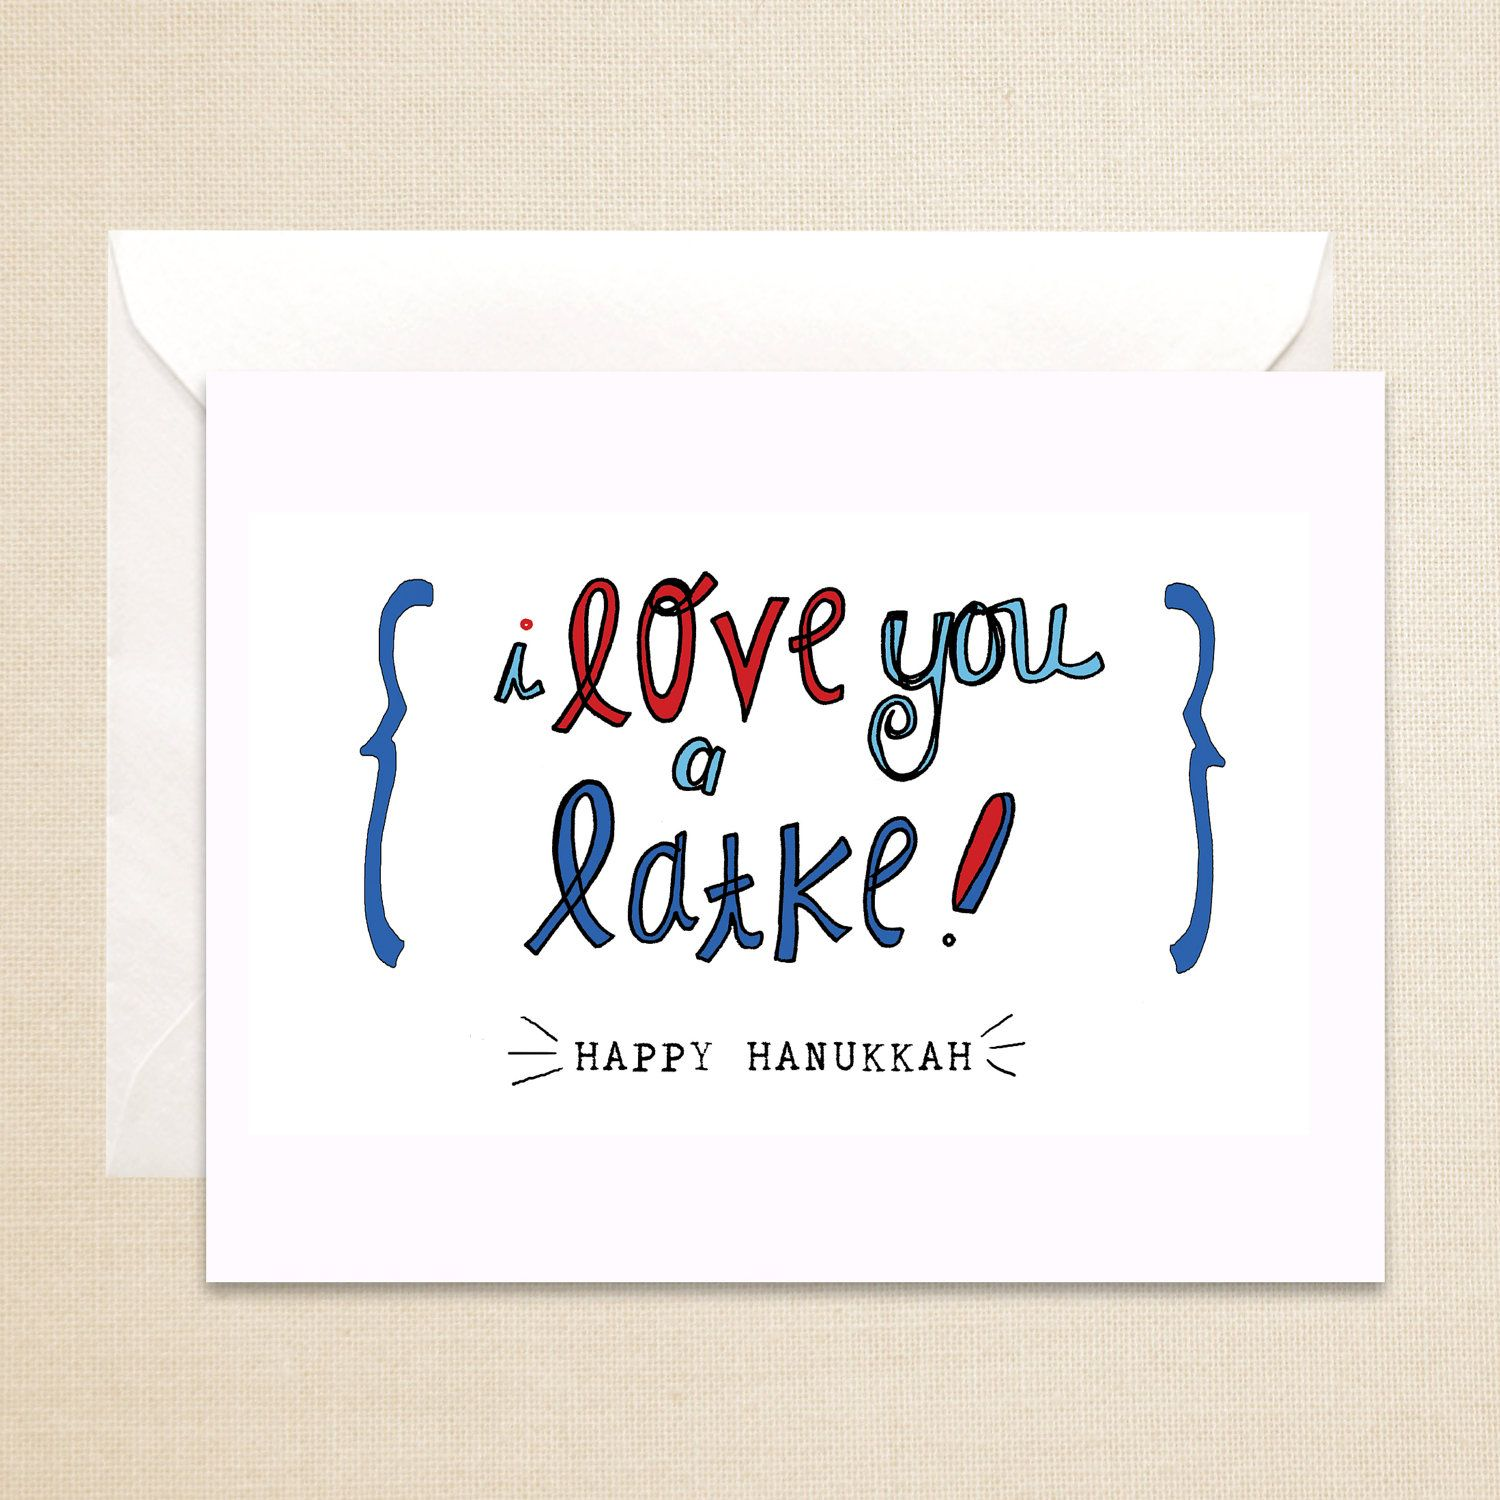 Hannukah Card Punny Card Humorous Red Blue Black Love You A